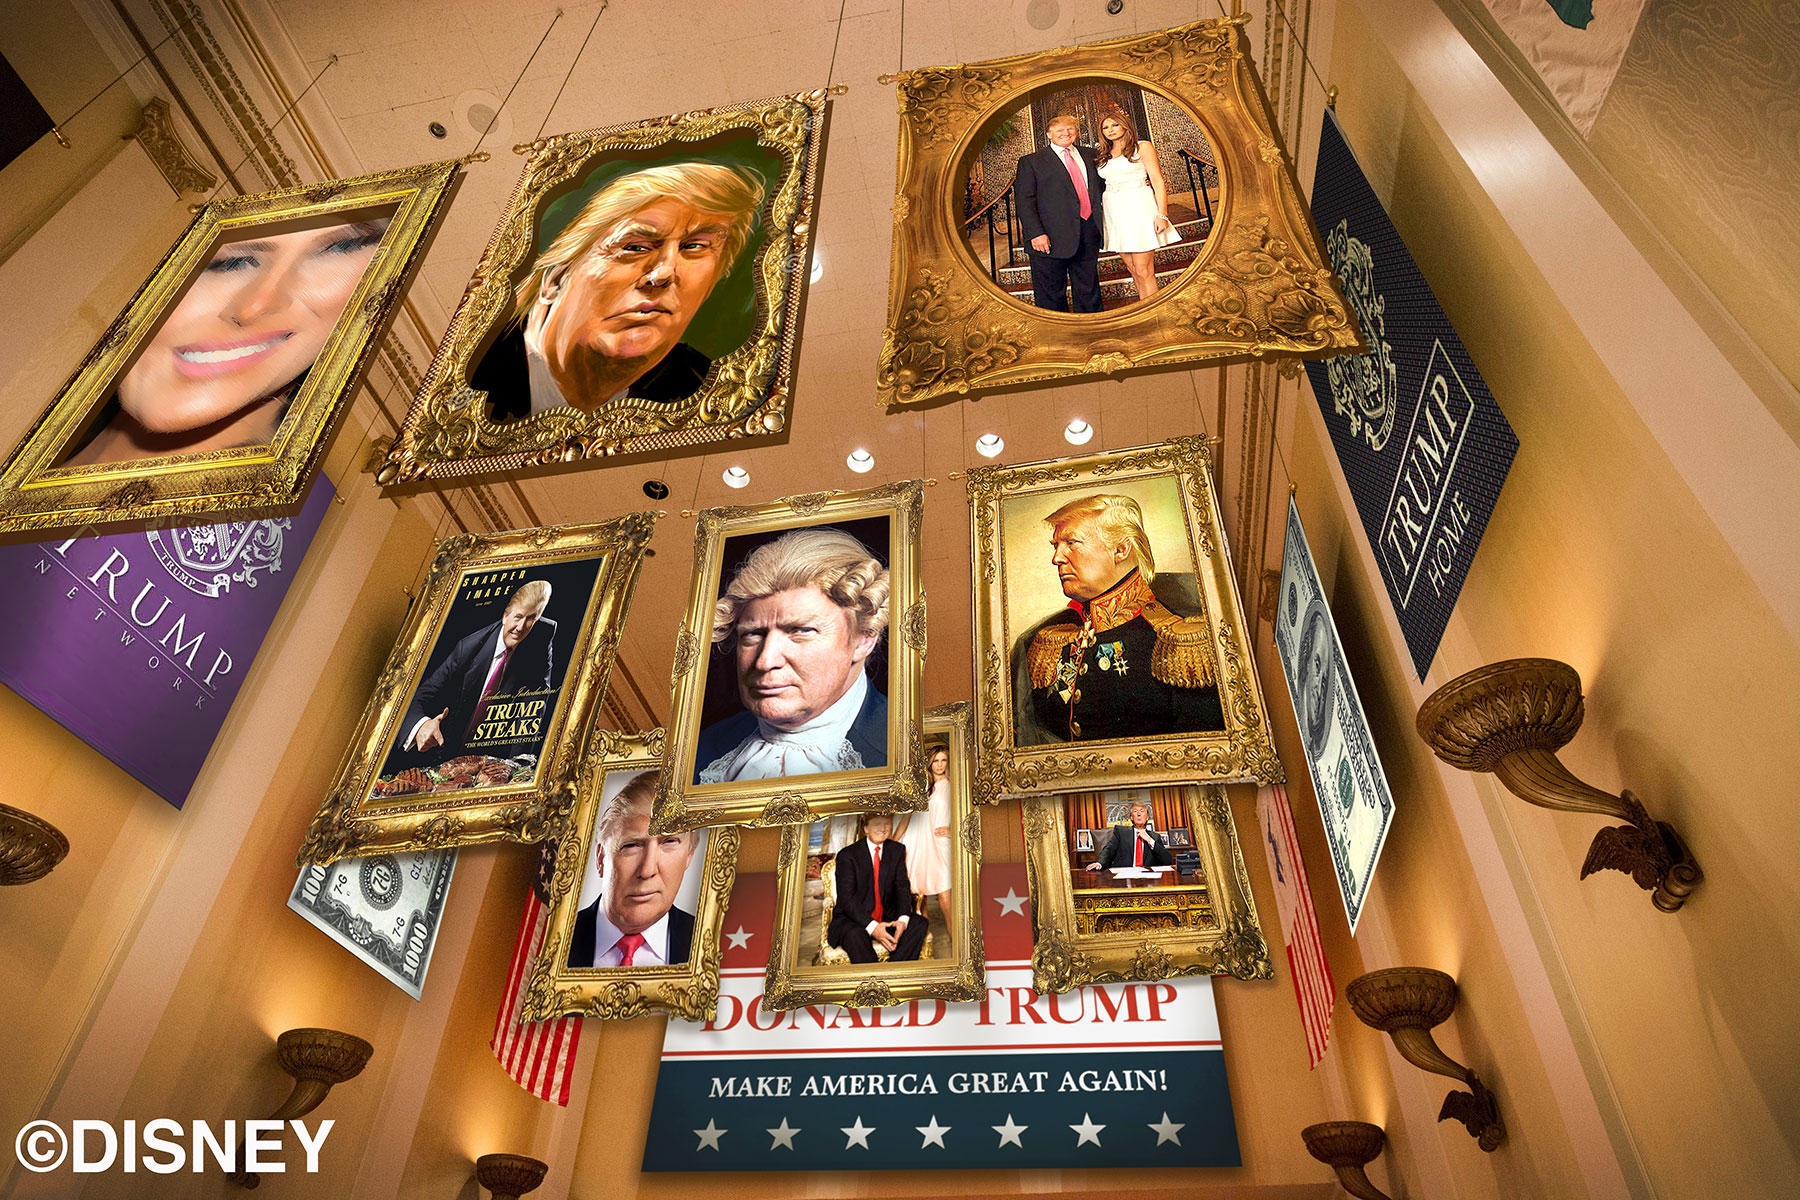 Hall-of-Trump Disney